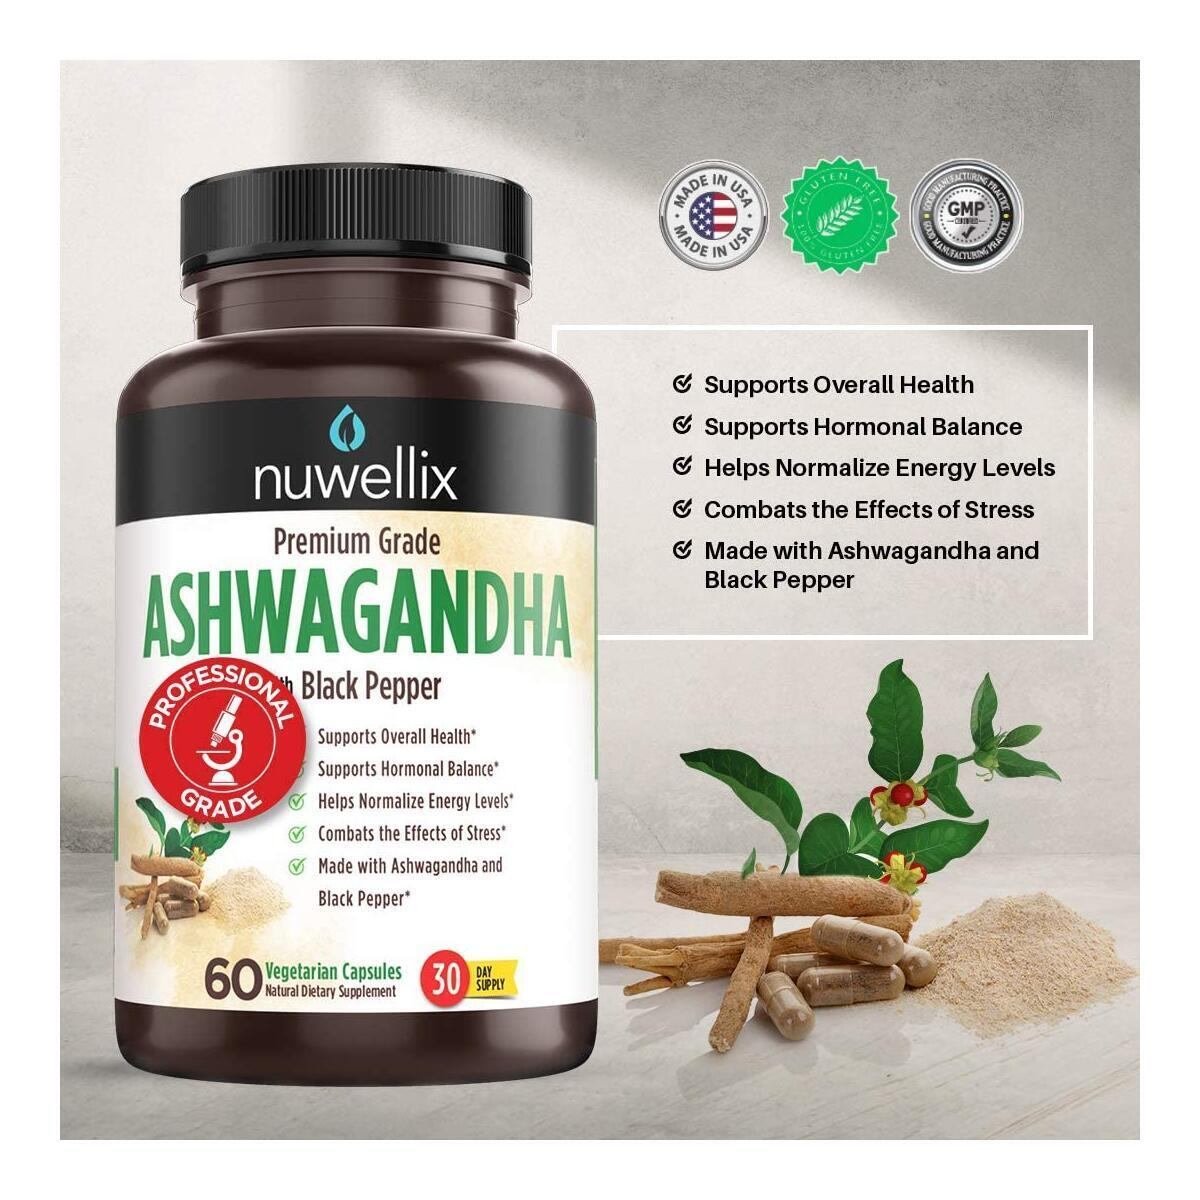 Ashwagandha Capsules with Black Pepper Extract - 1300mg, Natural Ashwagandha Supplement Supports Anxiety and Stress Relief - Promotes Energy Level - 60 Vegetarian Capsules